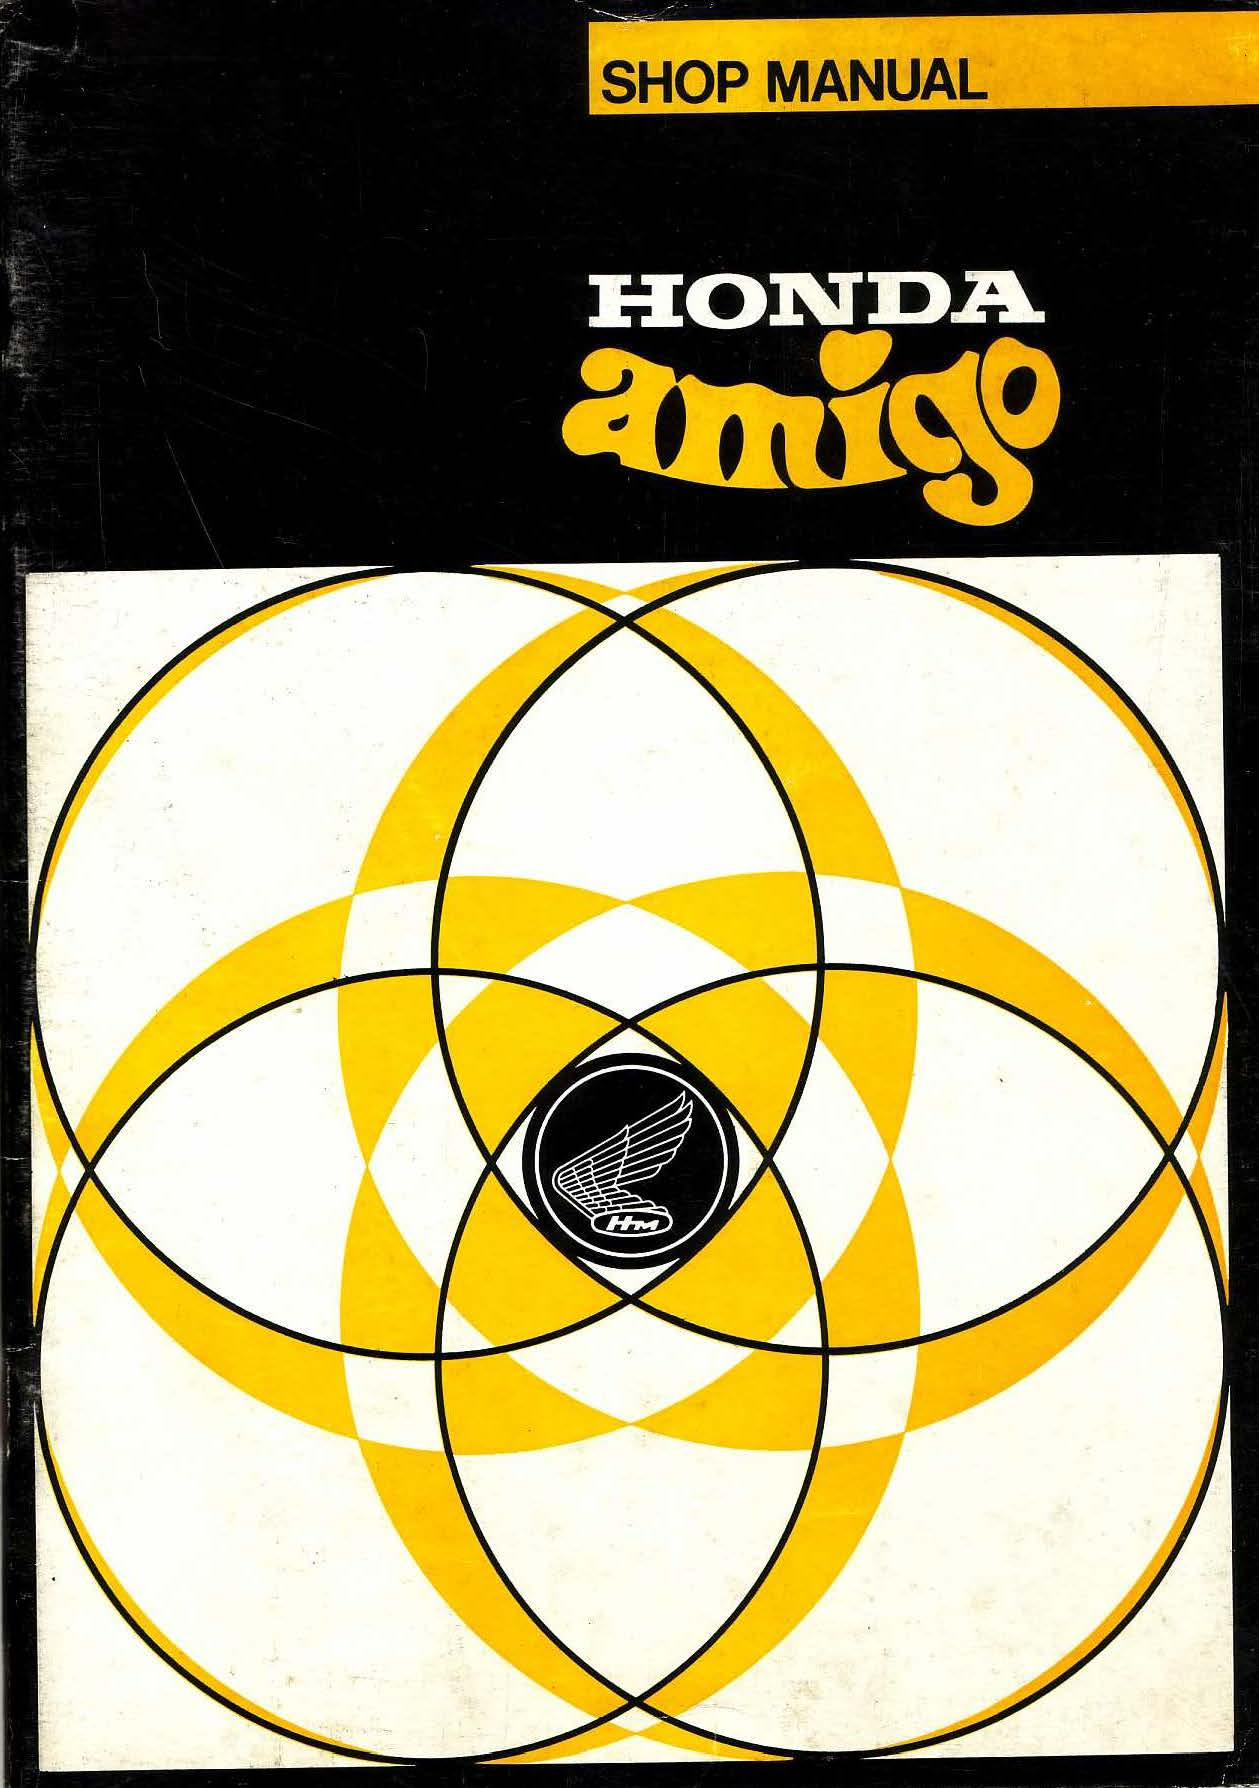 Workshop manual for Honda PF50 Amigo (French)